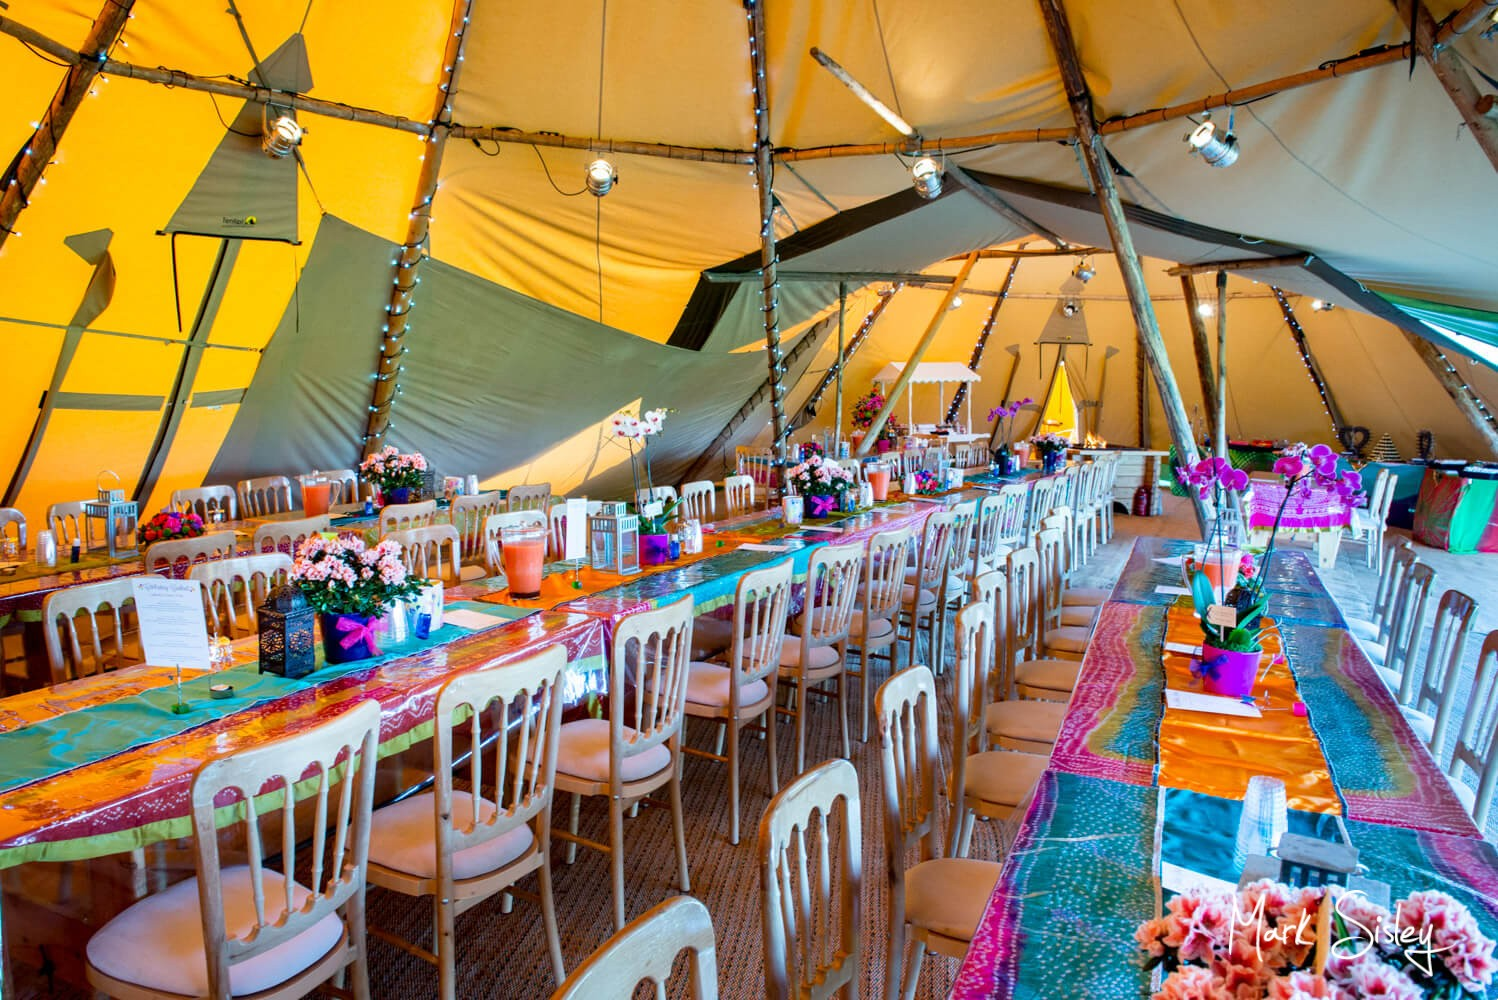 Asian wedding pictures Buckinghamshire - Tipi interior